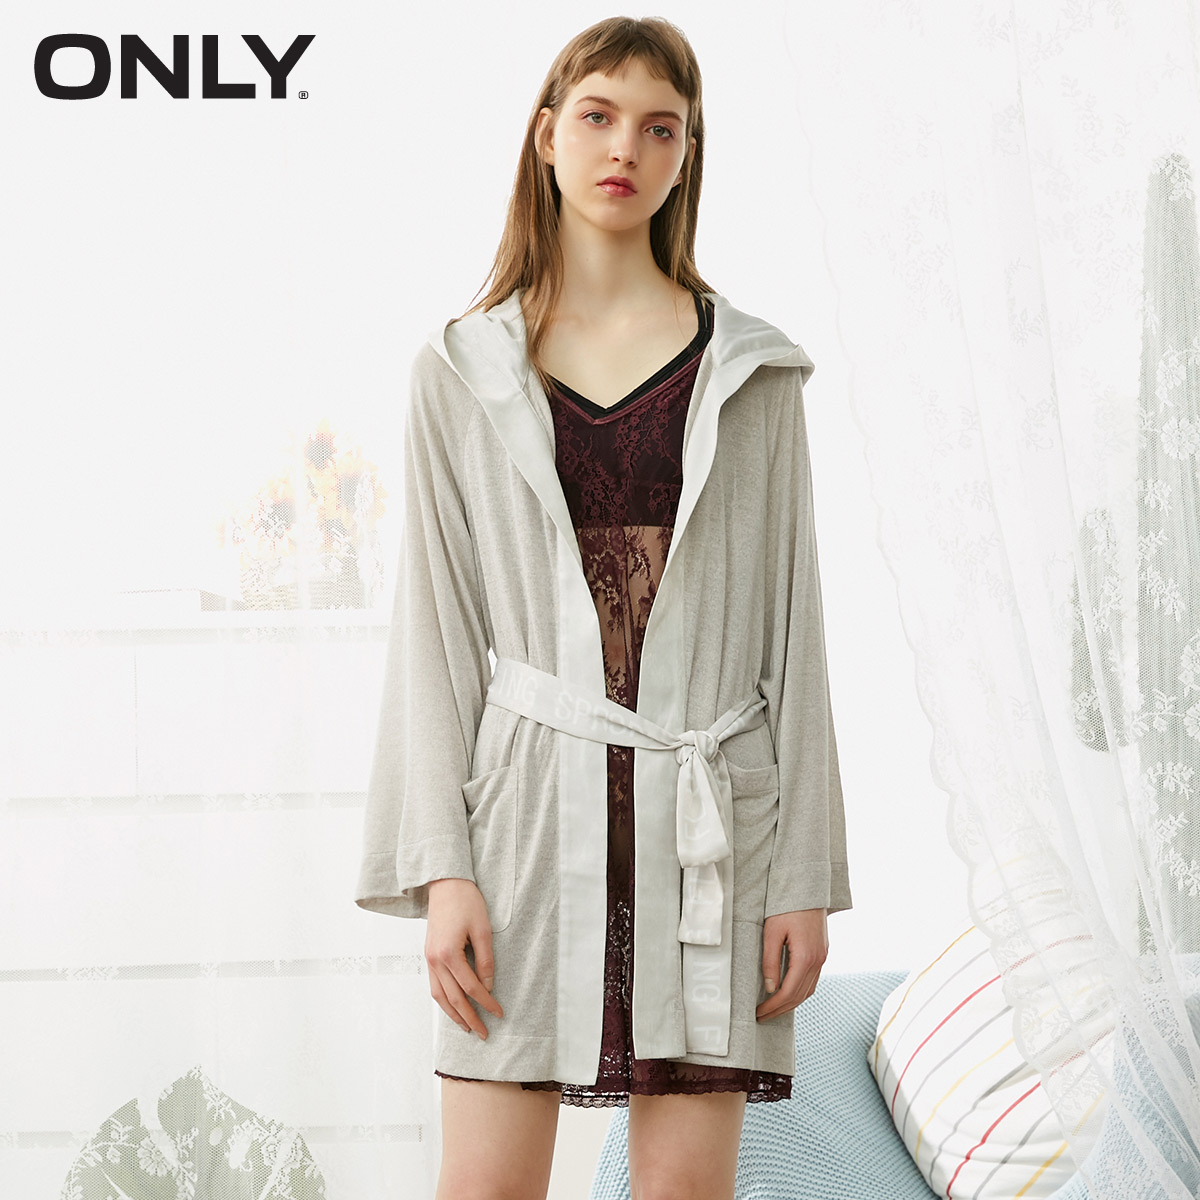 ONLY  Spring Summer New Women's Loose Fit Satin Splice Hooded Night Gown |1182R7501